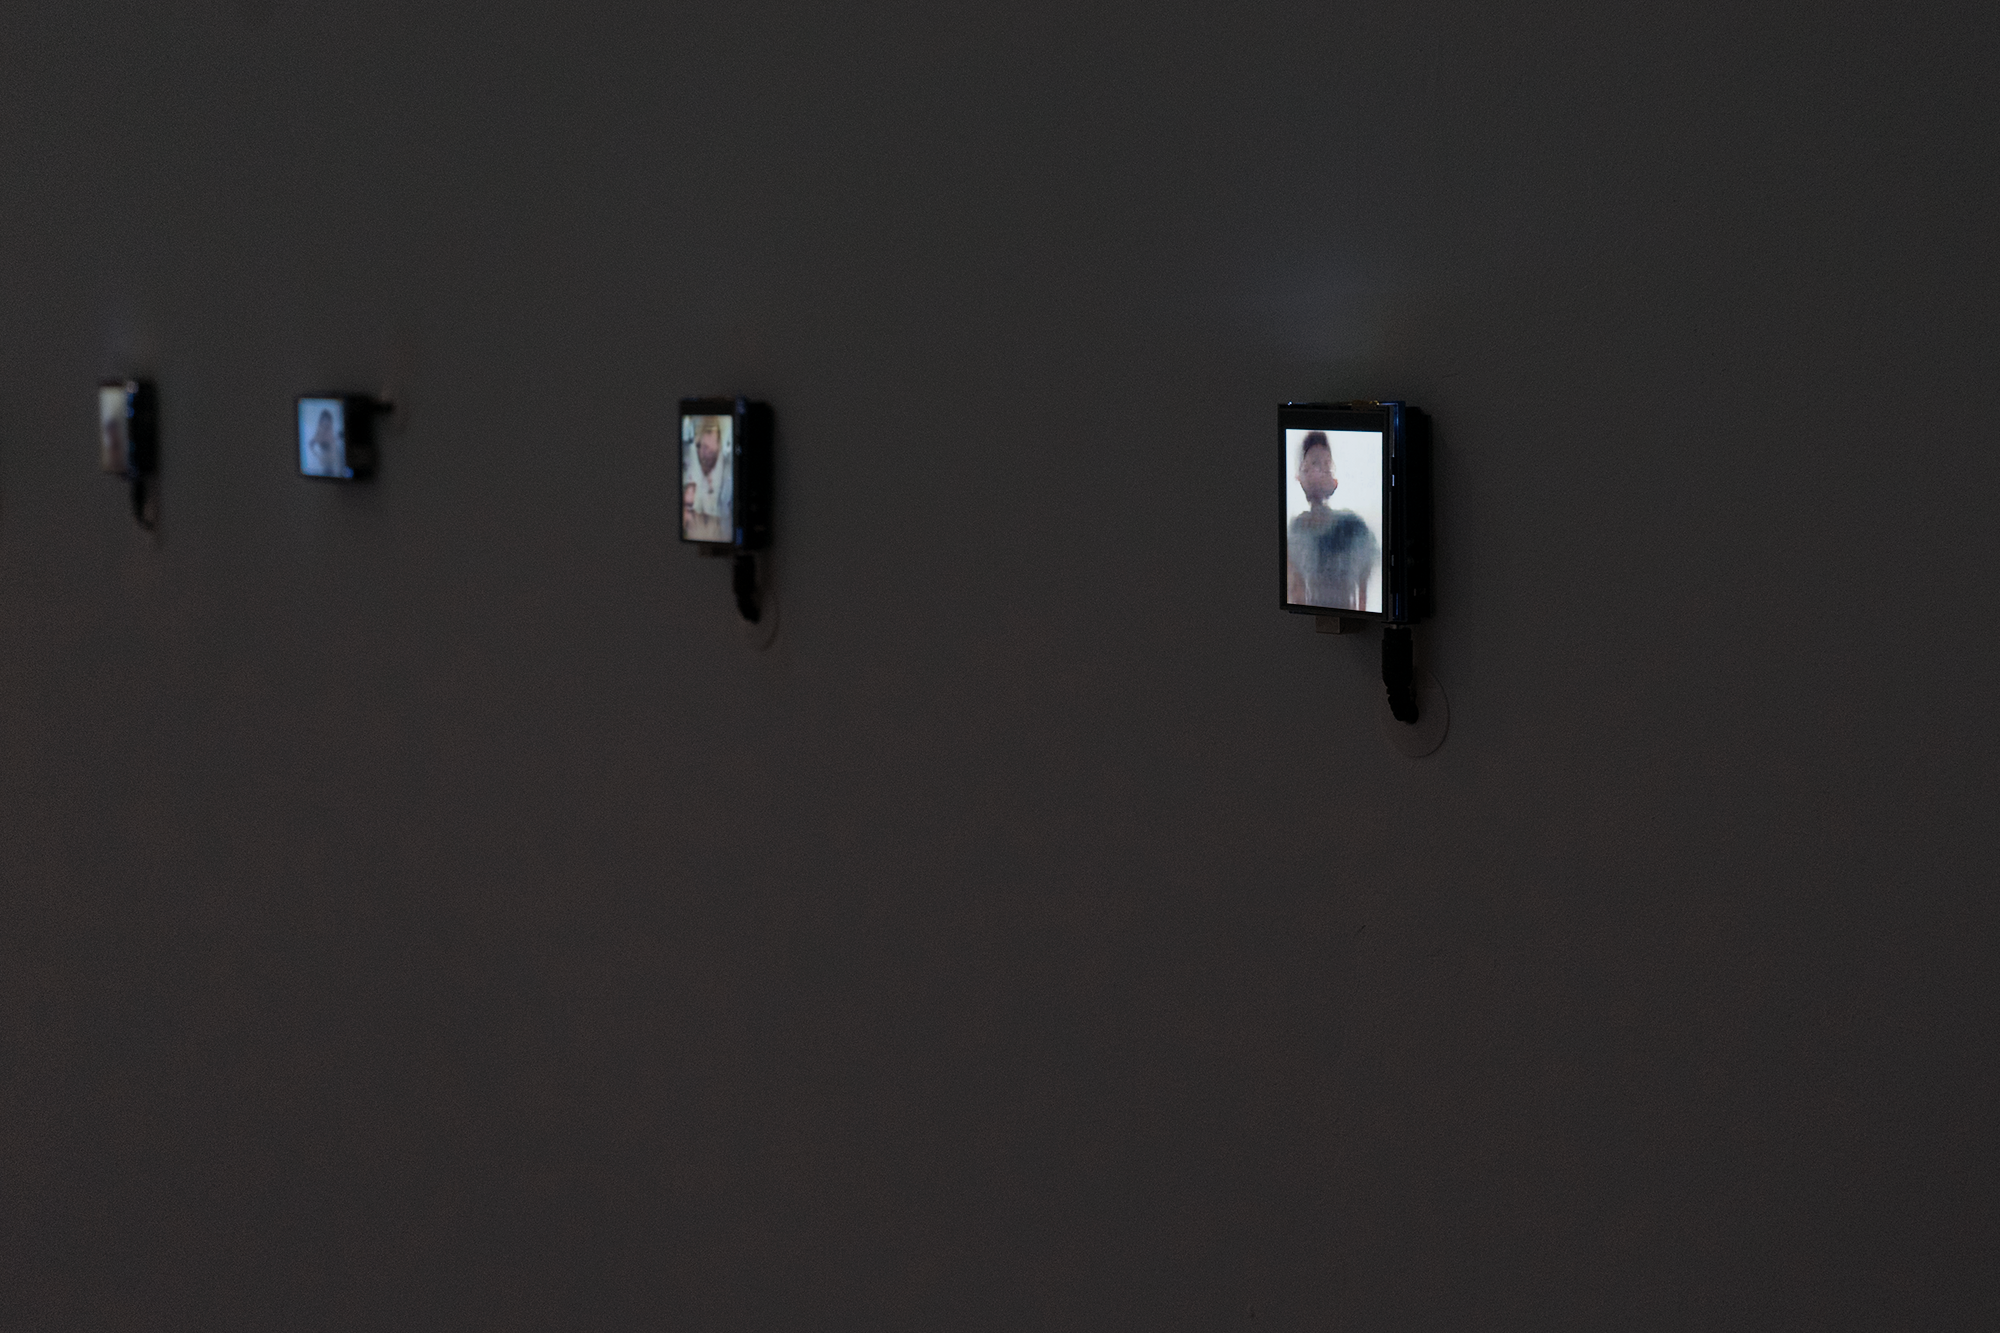 A medium angle photo of four (out of 10 total in the installation) bright LCDs displaying a static image that loosely resemble human beings. The screen is attached to a microcontroller and hangs on the wall with four pushpins. A 12 volt power supply connects at the bottom of the microcontroller and then threads into the wall.